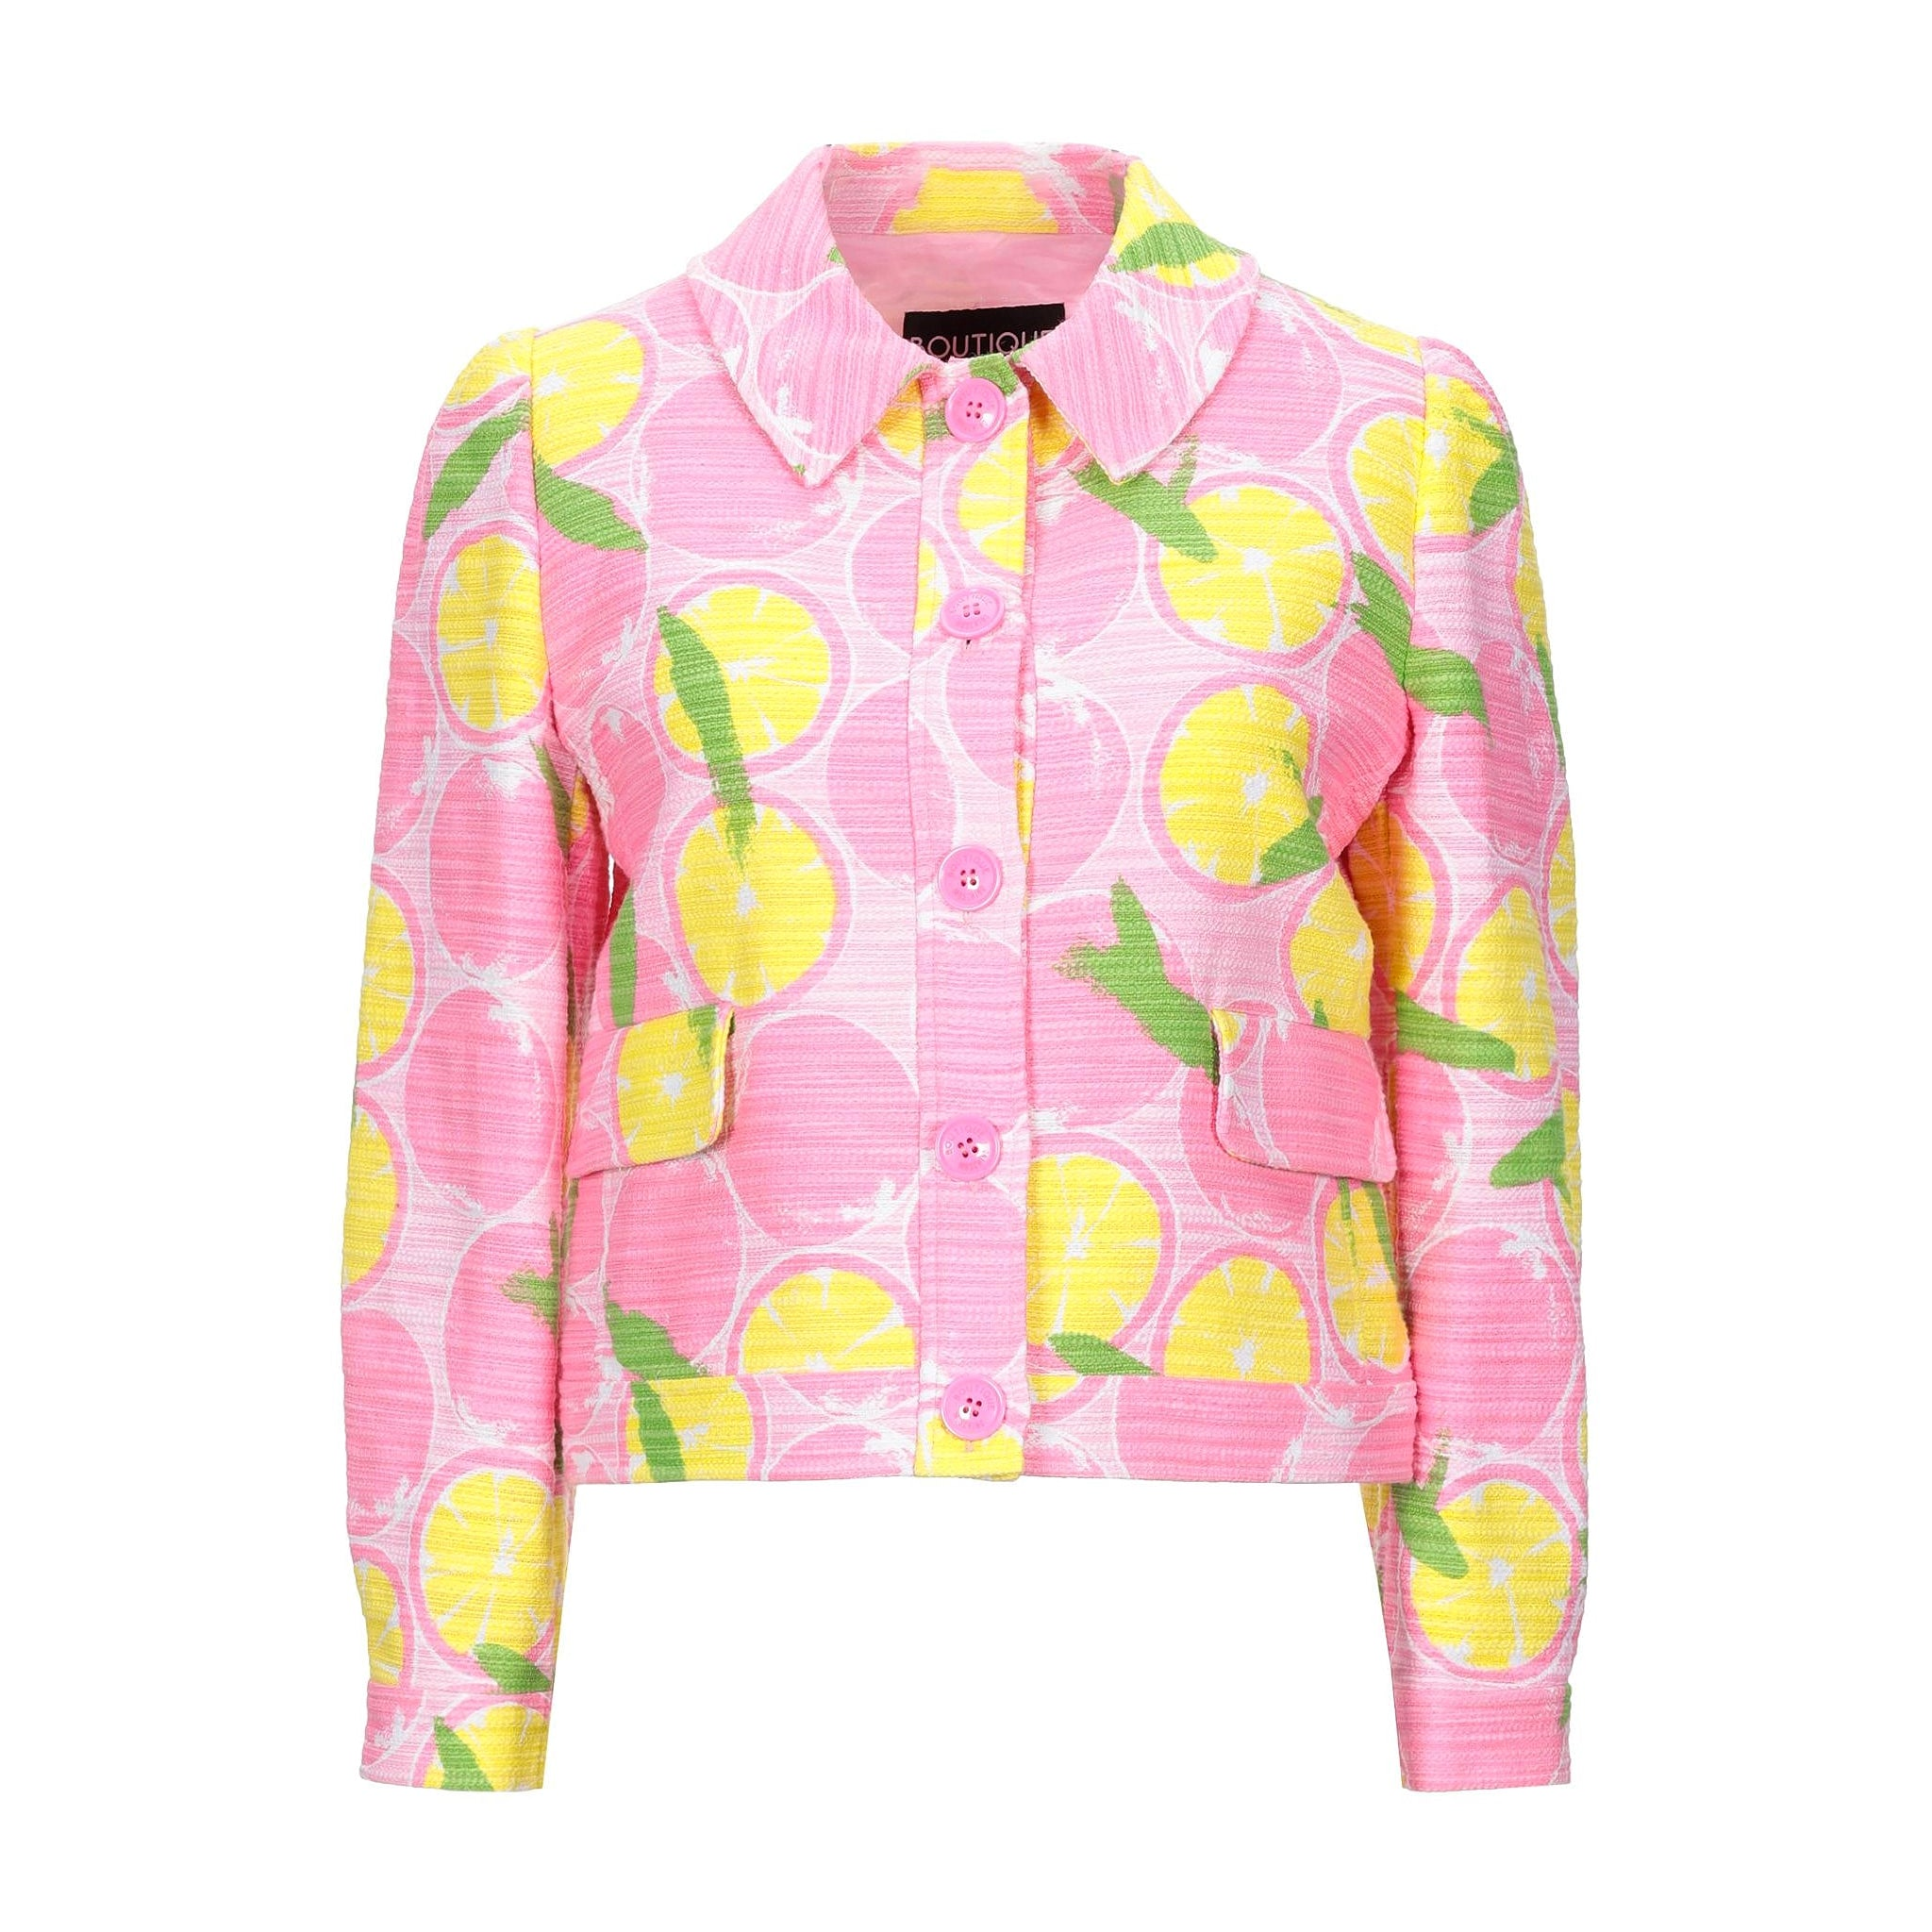 Boutique Moschino Jacquard Printed Jacket